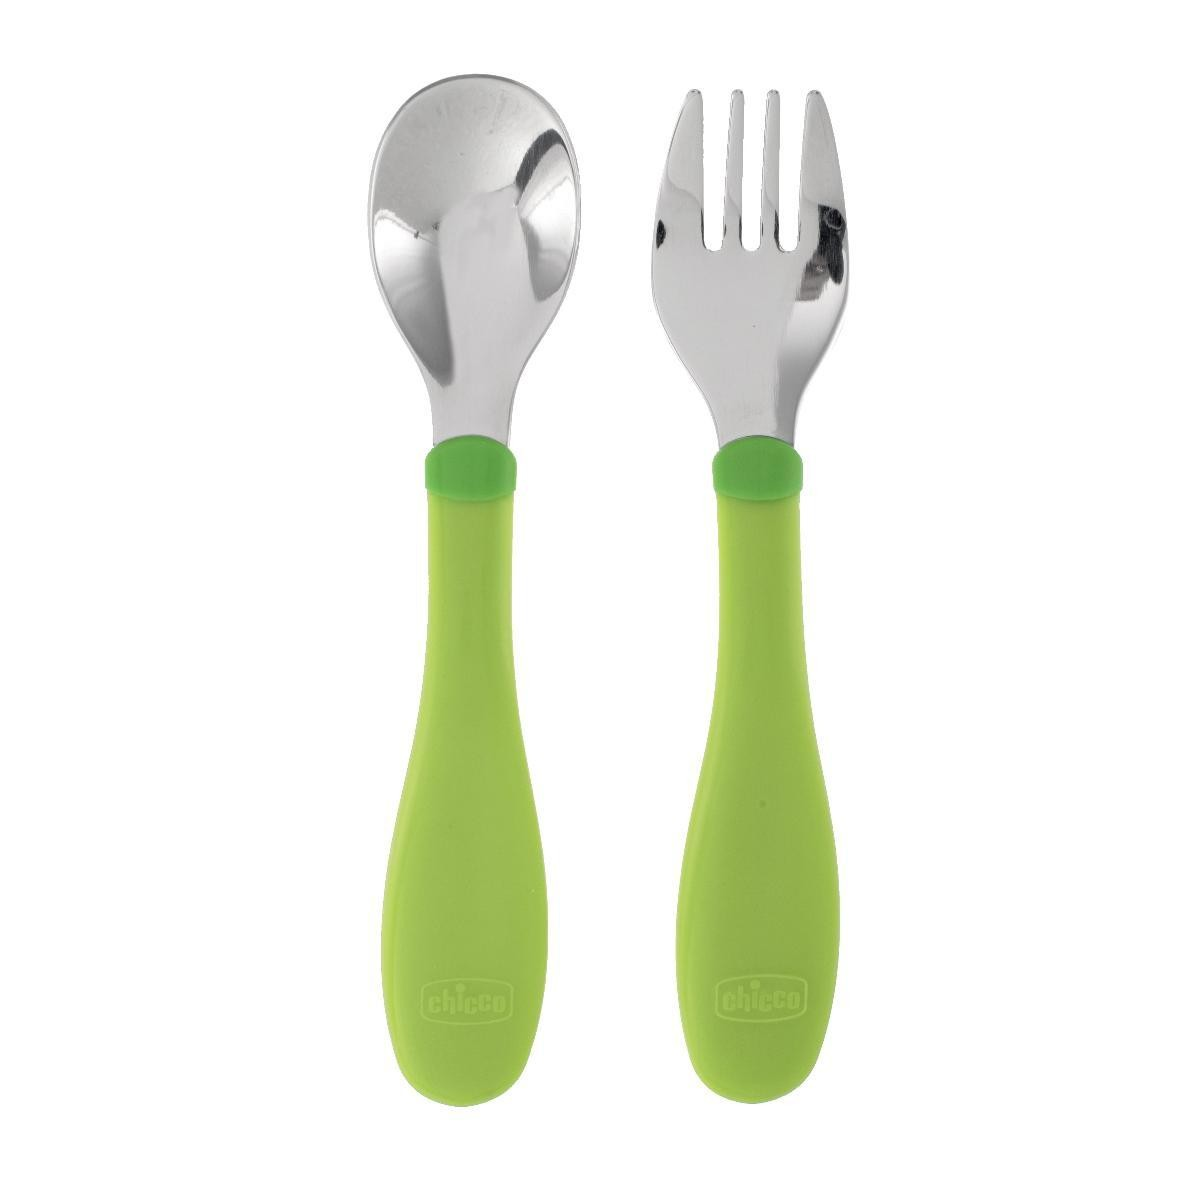 chicco-cutlery